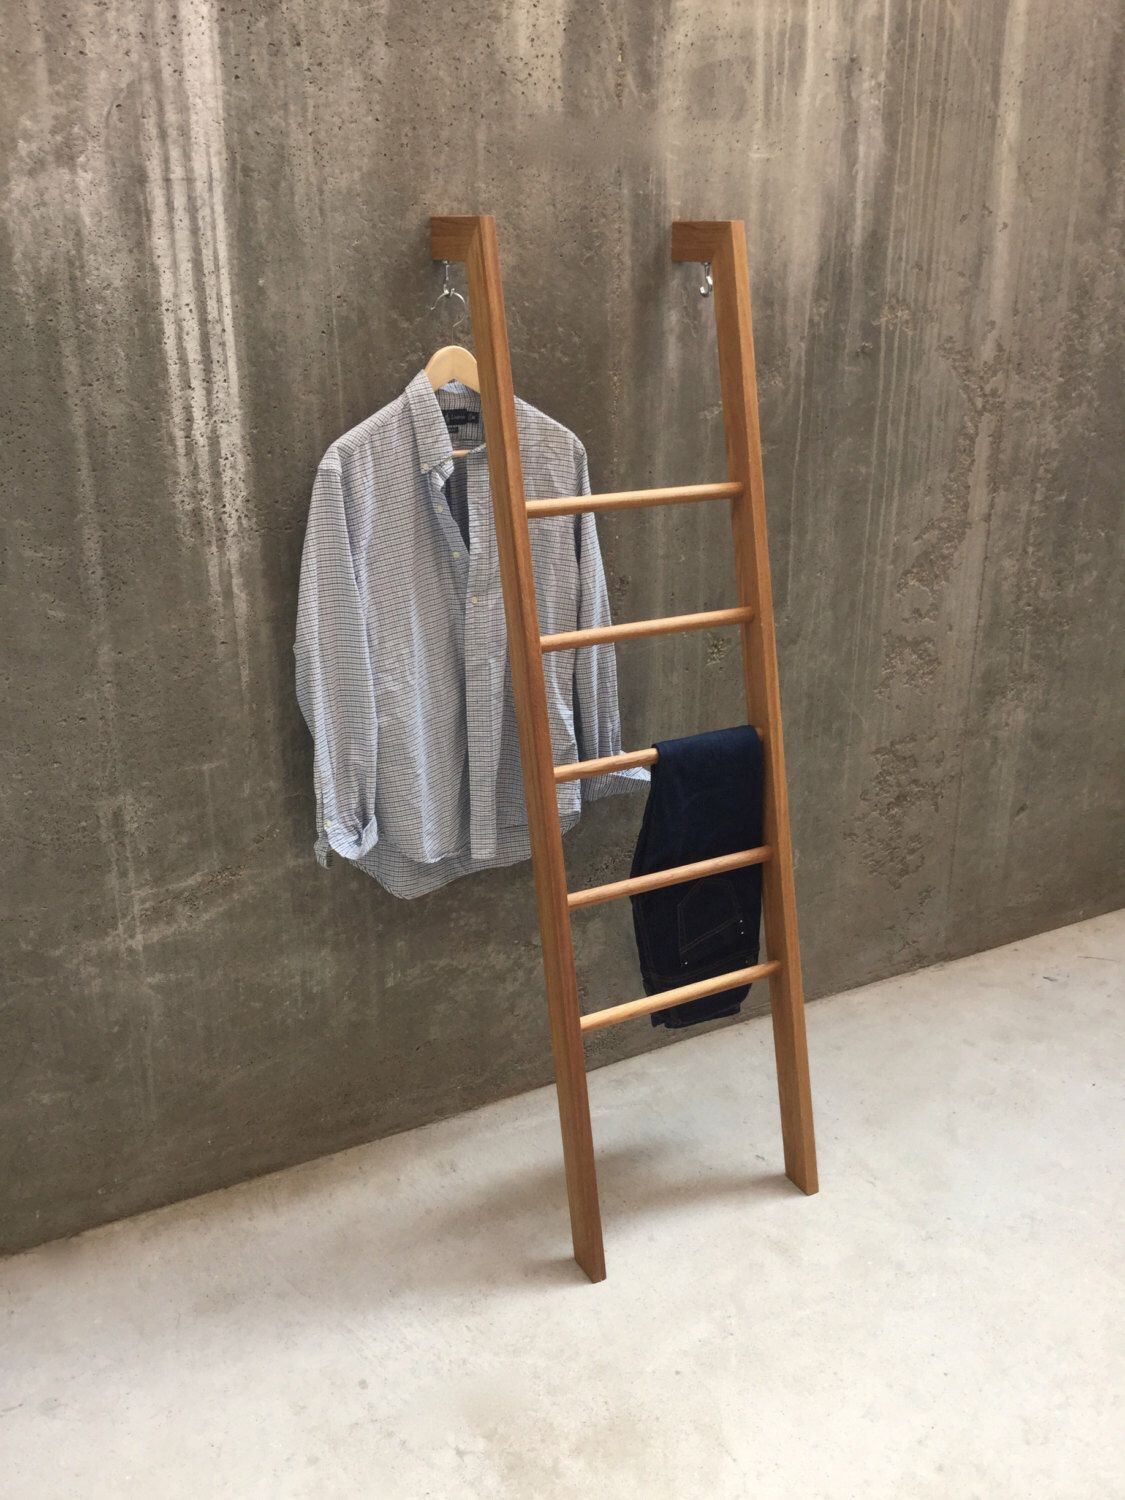 Tb 3 Modern Day Valet Stand Clothes Organiser In Oak By Tidyboyberlin On Etsy